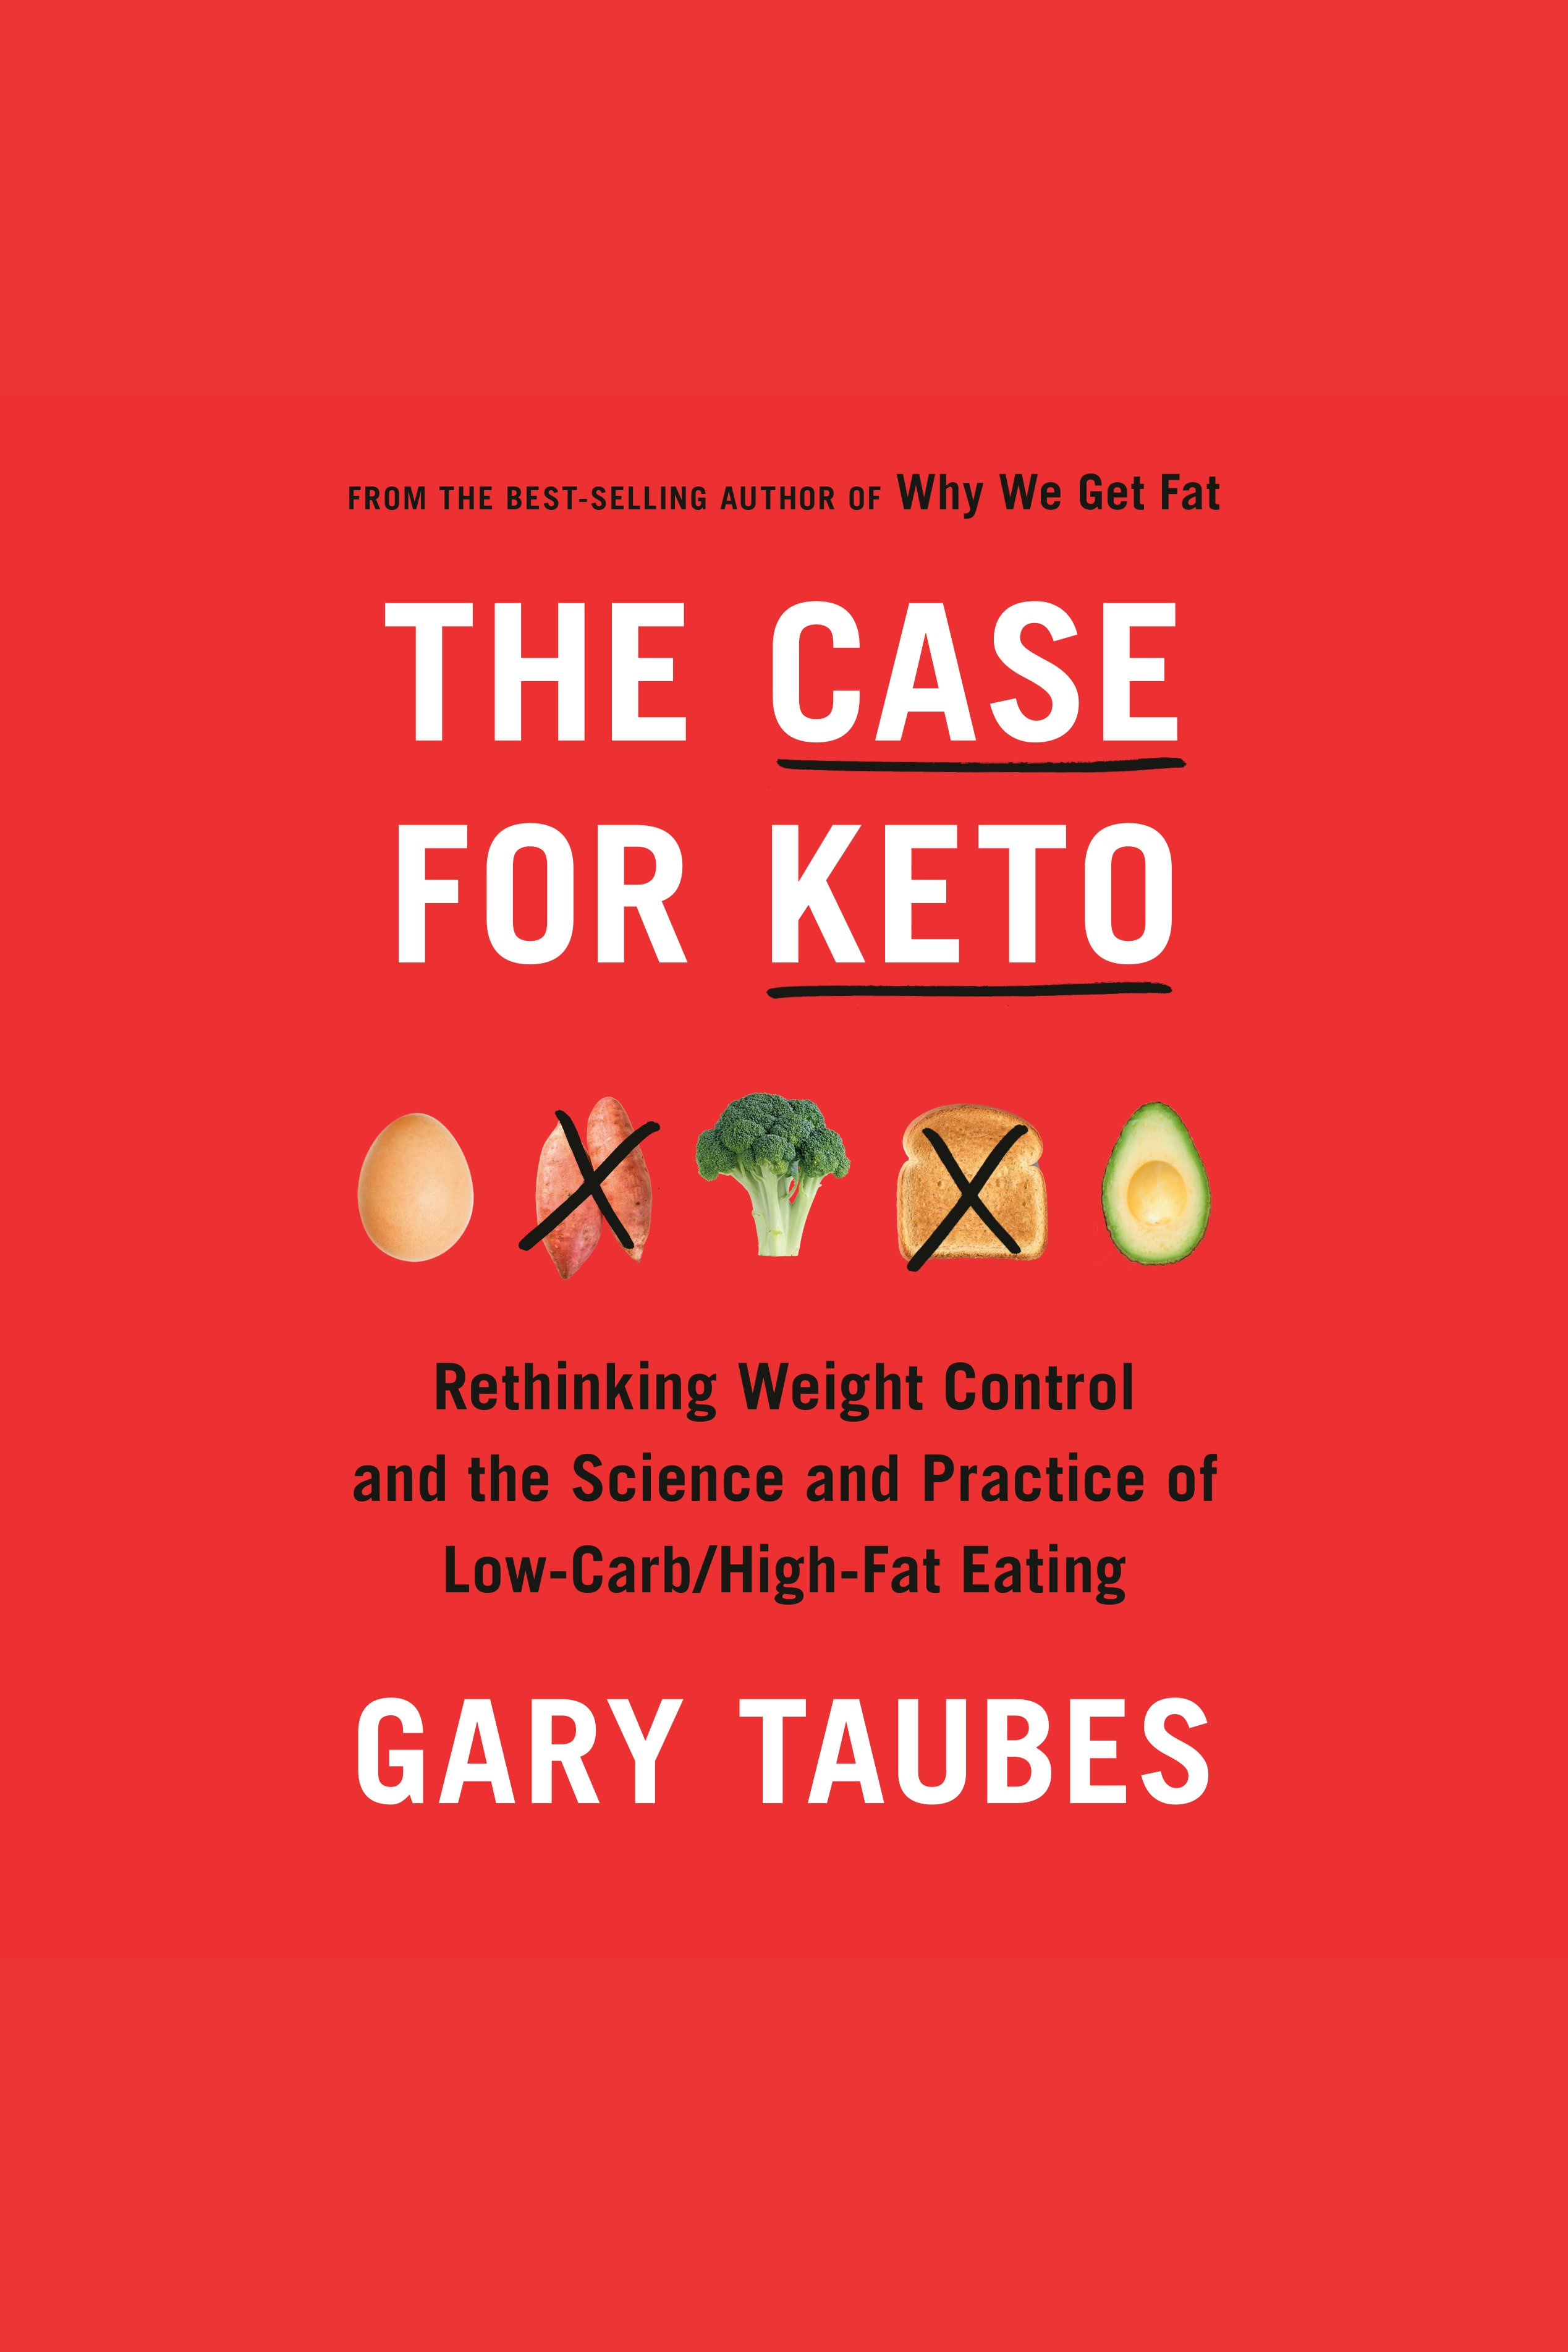 Case for Keto, The Rethinking Weight Control and the Science and Practice of Low-Carb/High-Fat Eating